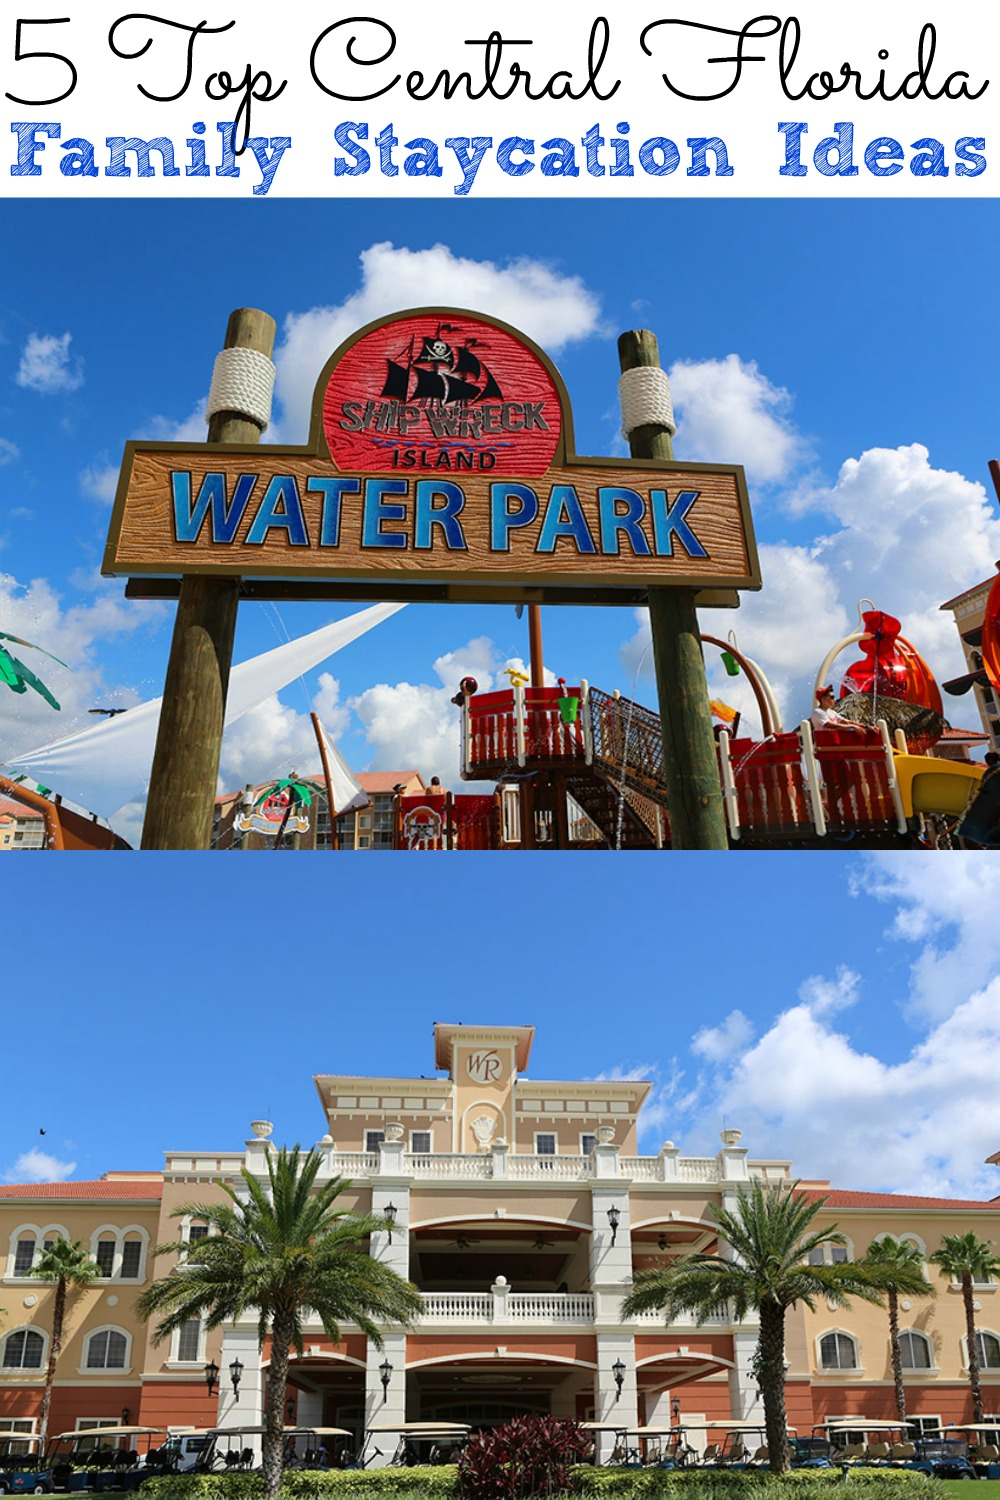 5 Top Central Florida Family Staycation Ideas - simplytodaylife.com